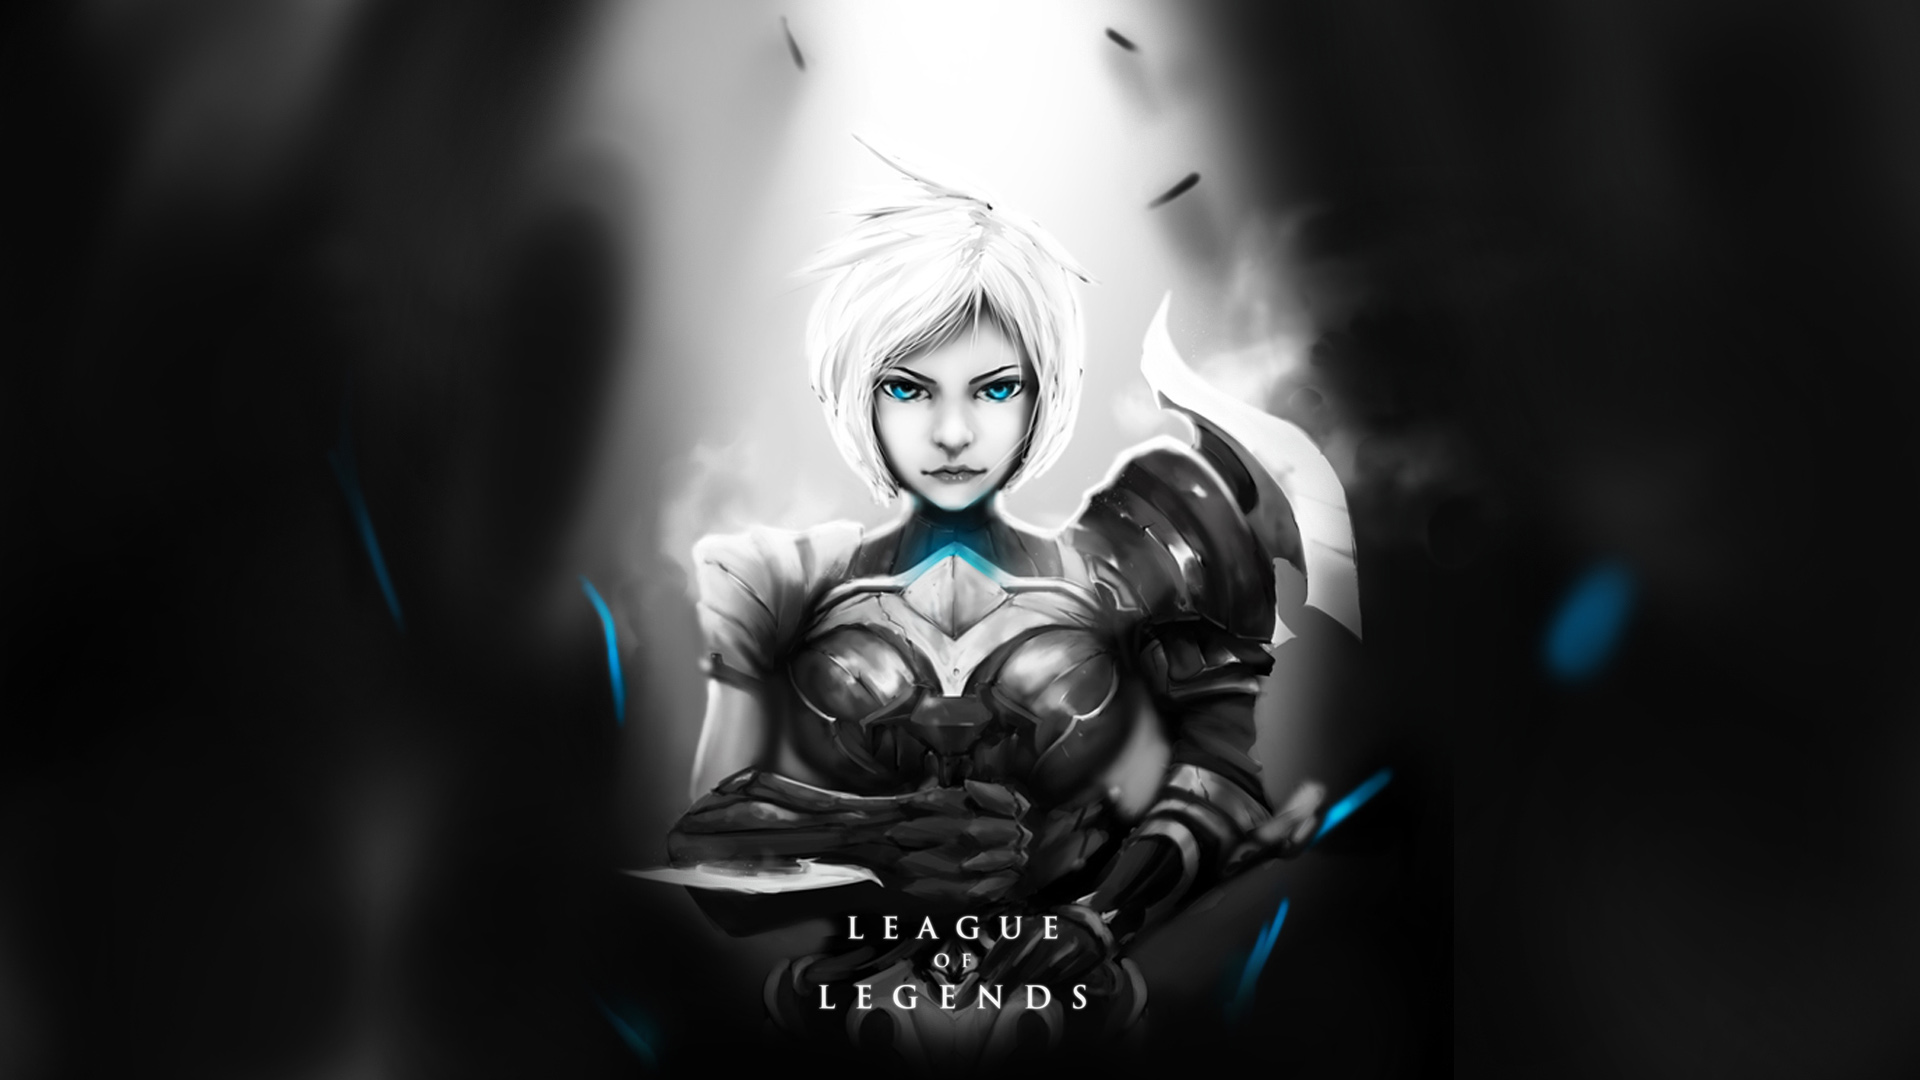 League Of Legends Championship Riven Wallpaper Background Is Cool Wallpapers